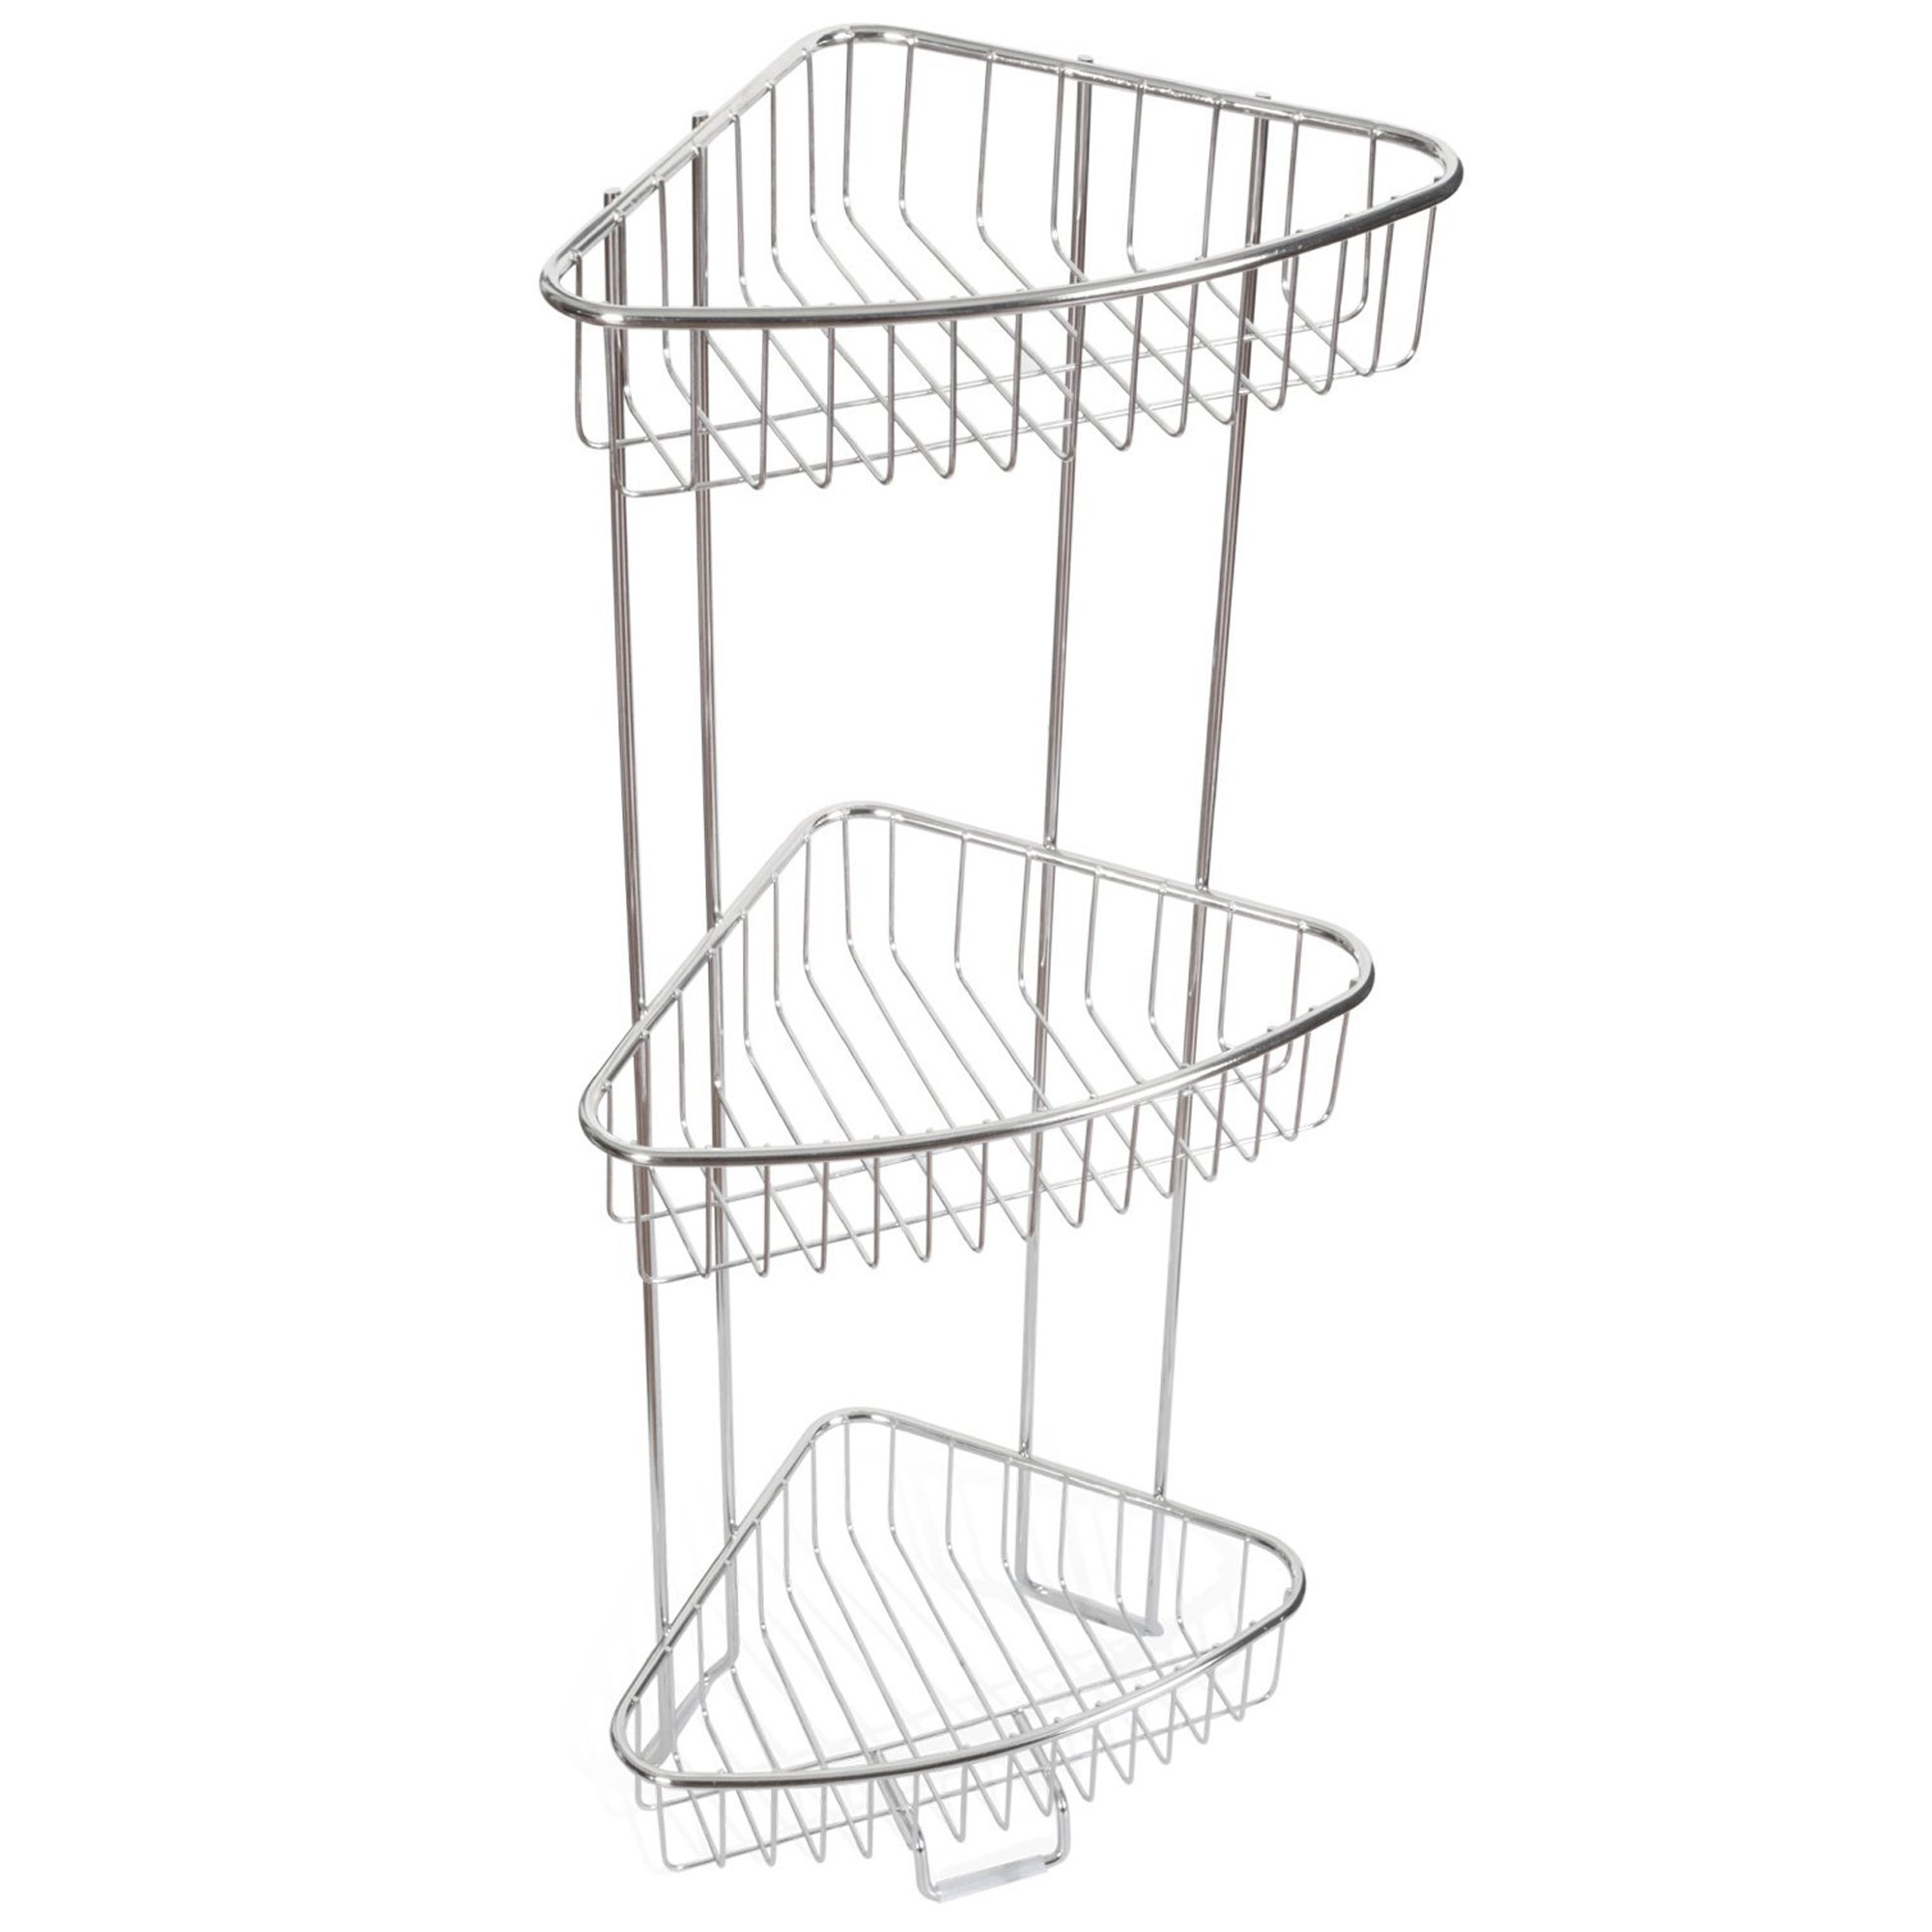 ToiletTree Products Rust Proof Stainless Steel Shower Floor Caddy, 3 Tiers by ToiletTree Products